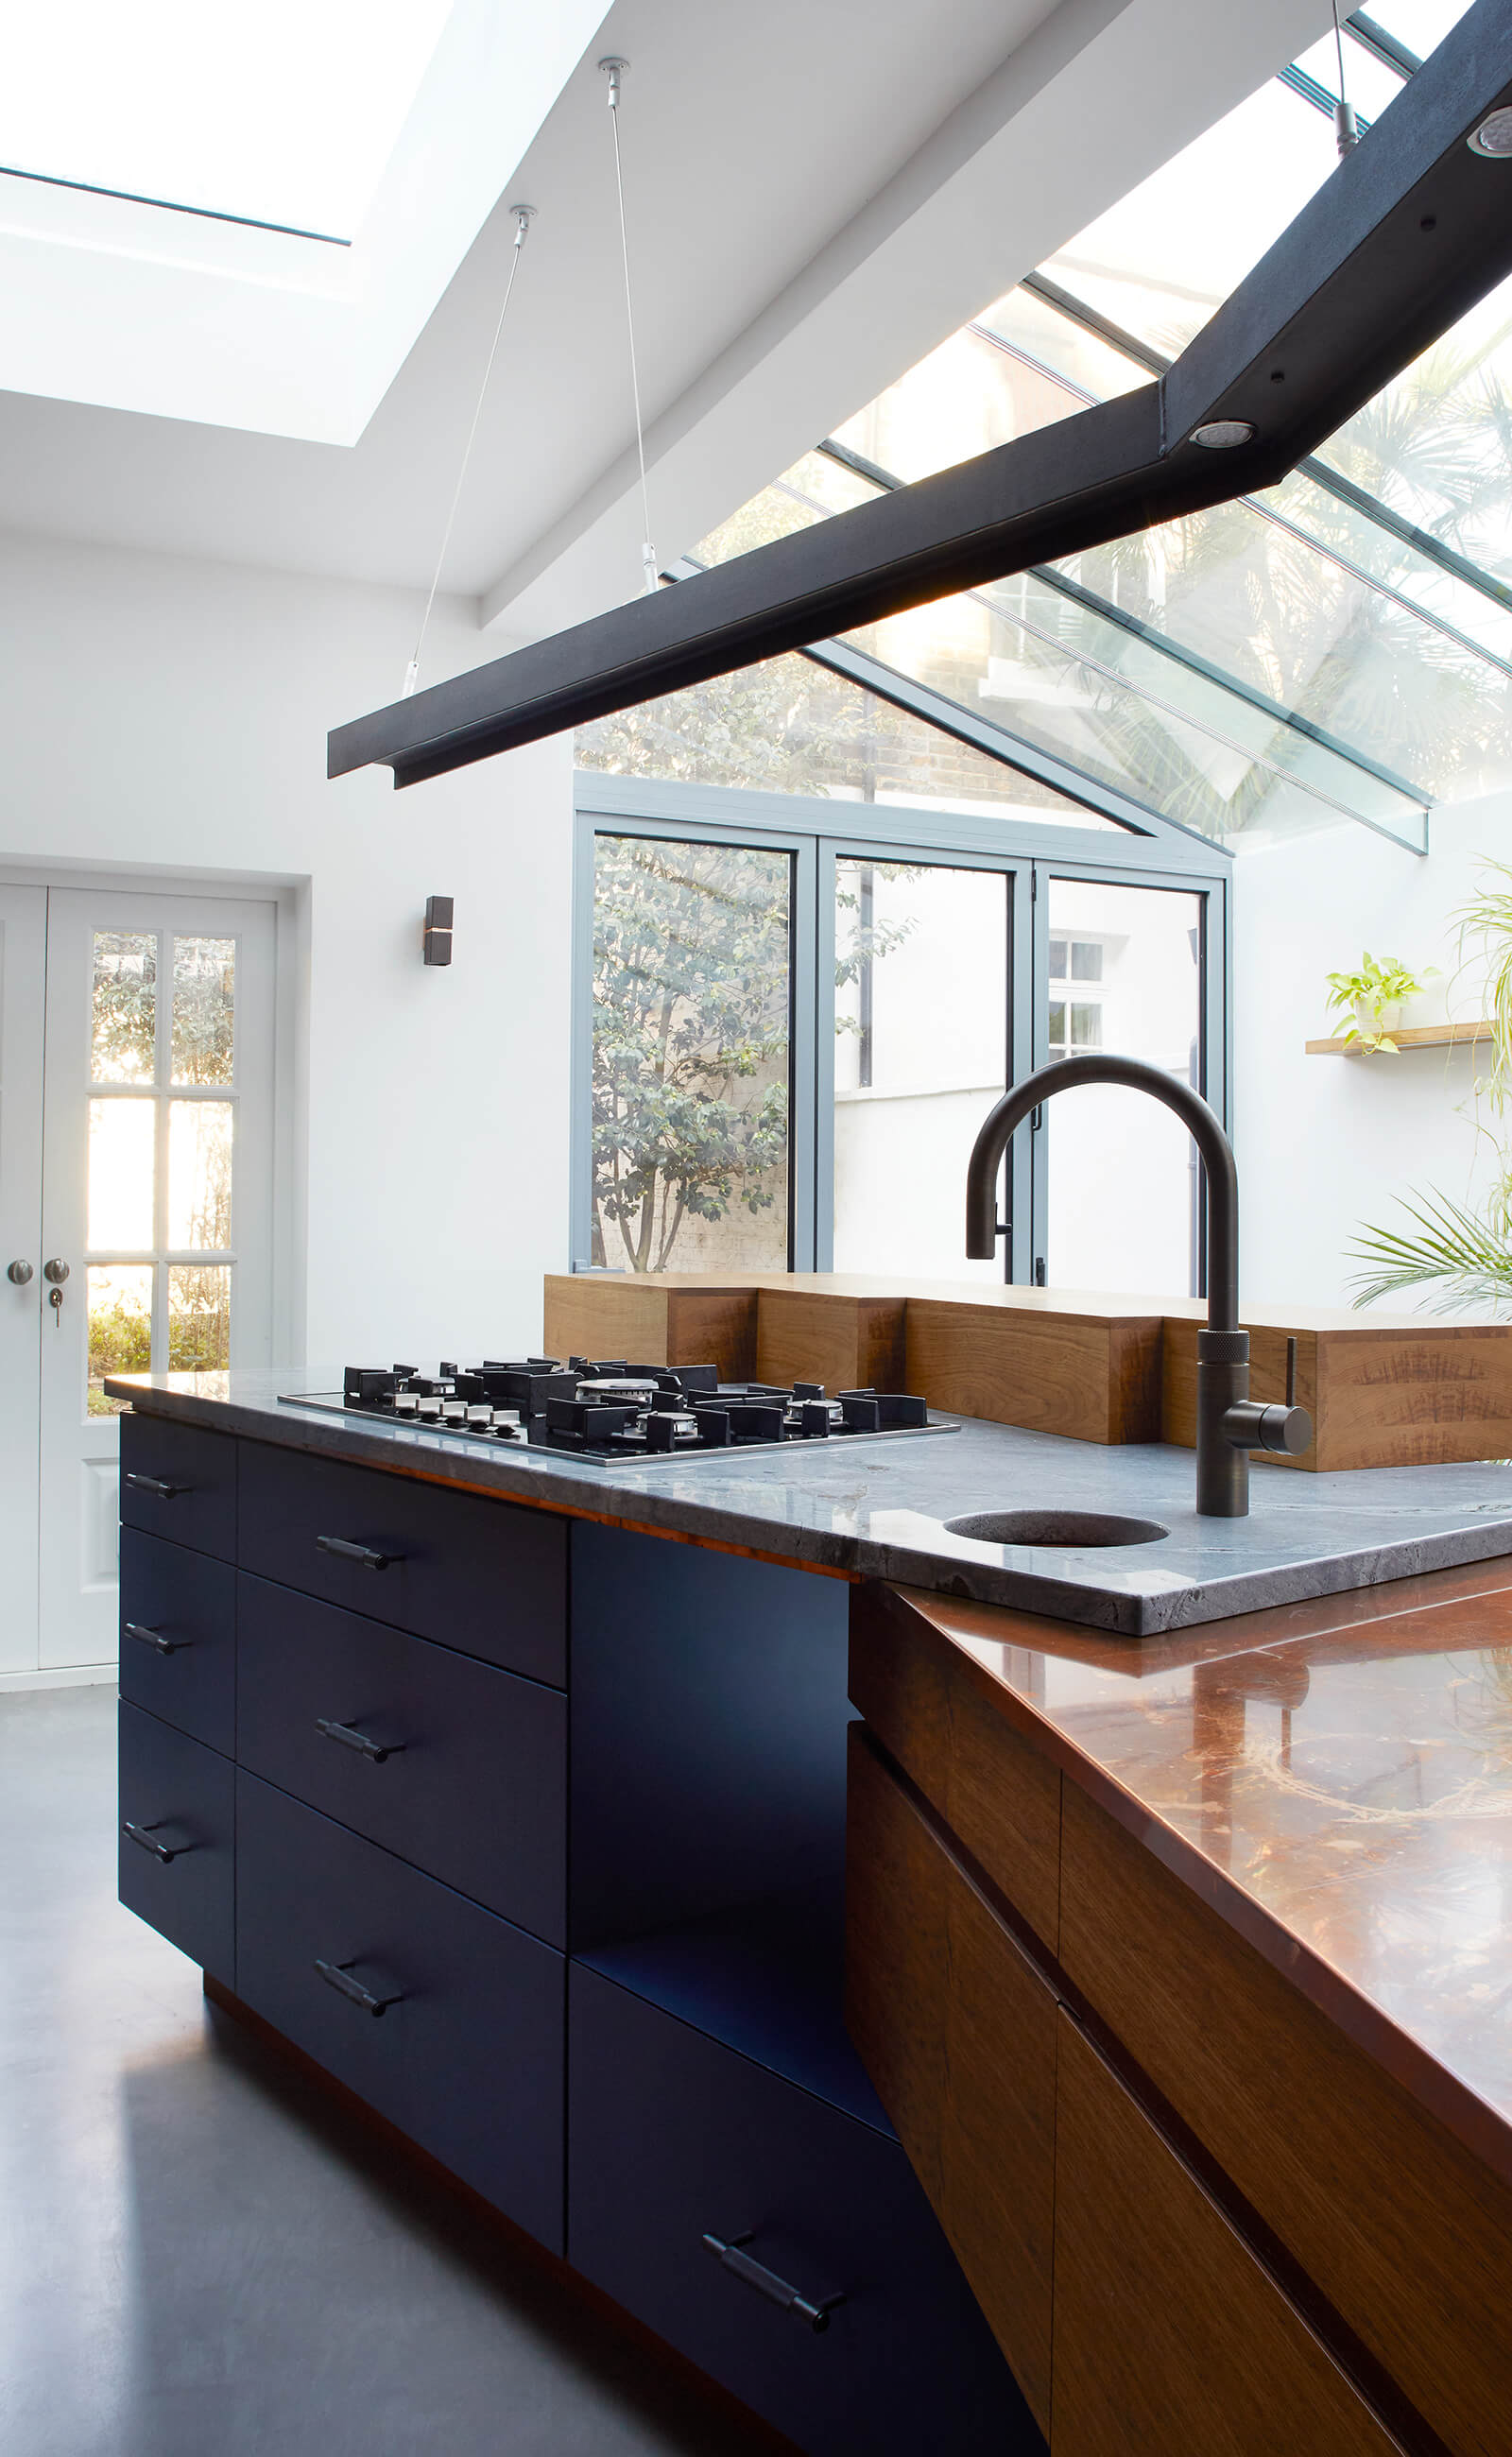 Concrete and copper work surfaces in family townhouse kitchen designed by Splinterworks